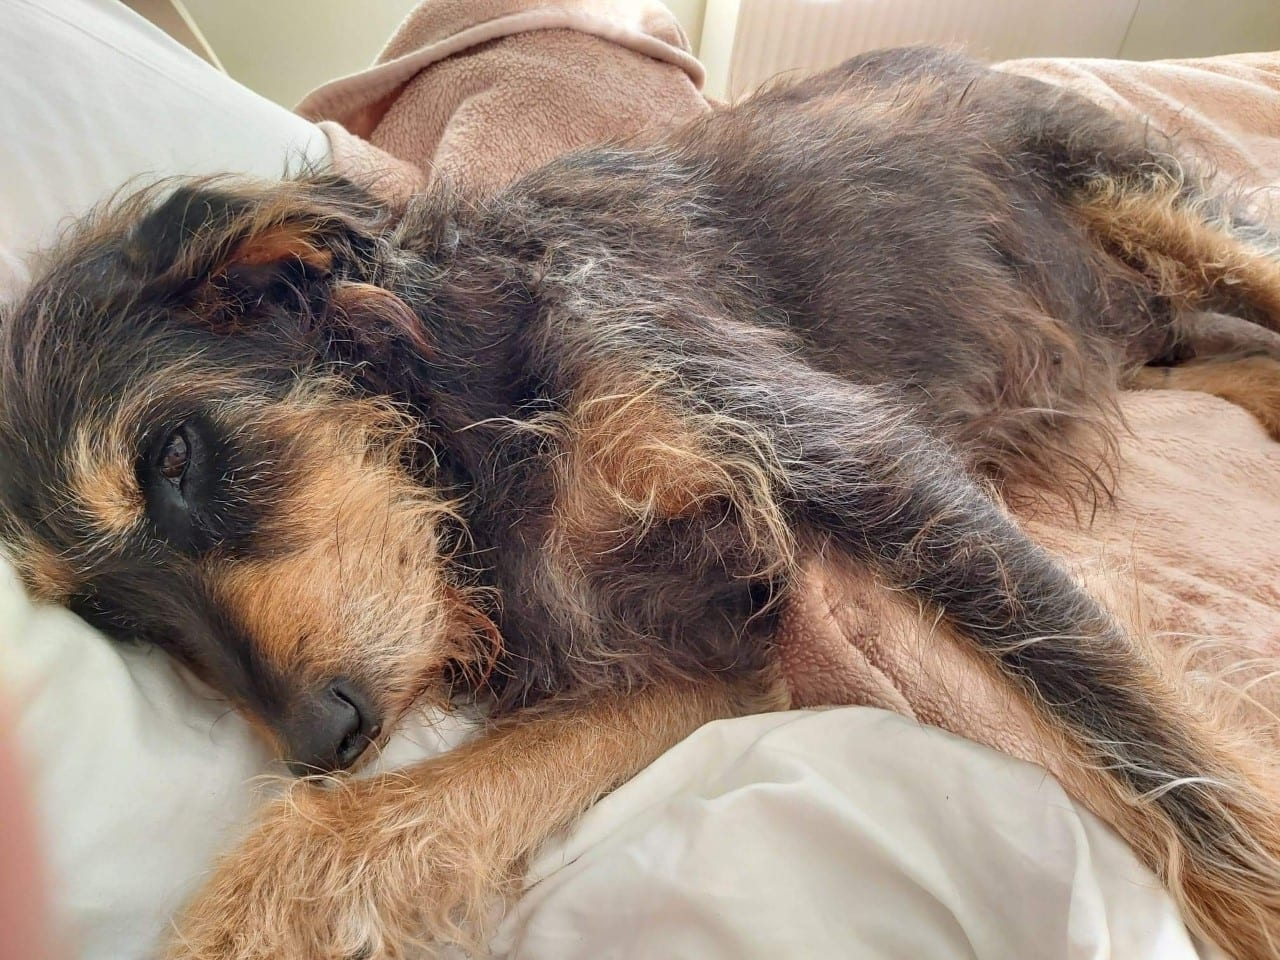 Bessie a brown and tan Romanian street dog lying down | 1 Dog At a Time Rescue UK